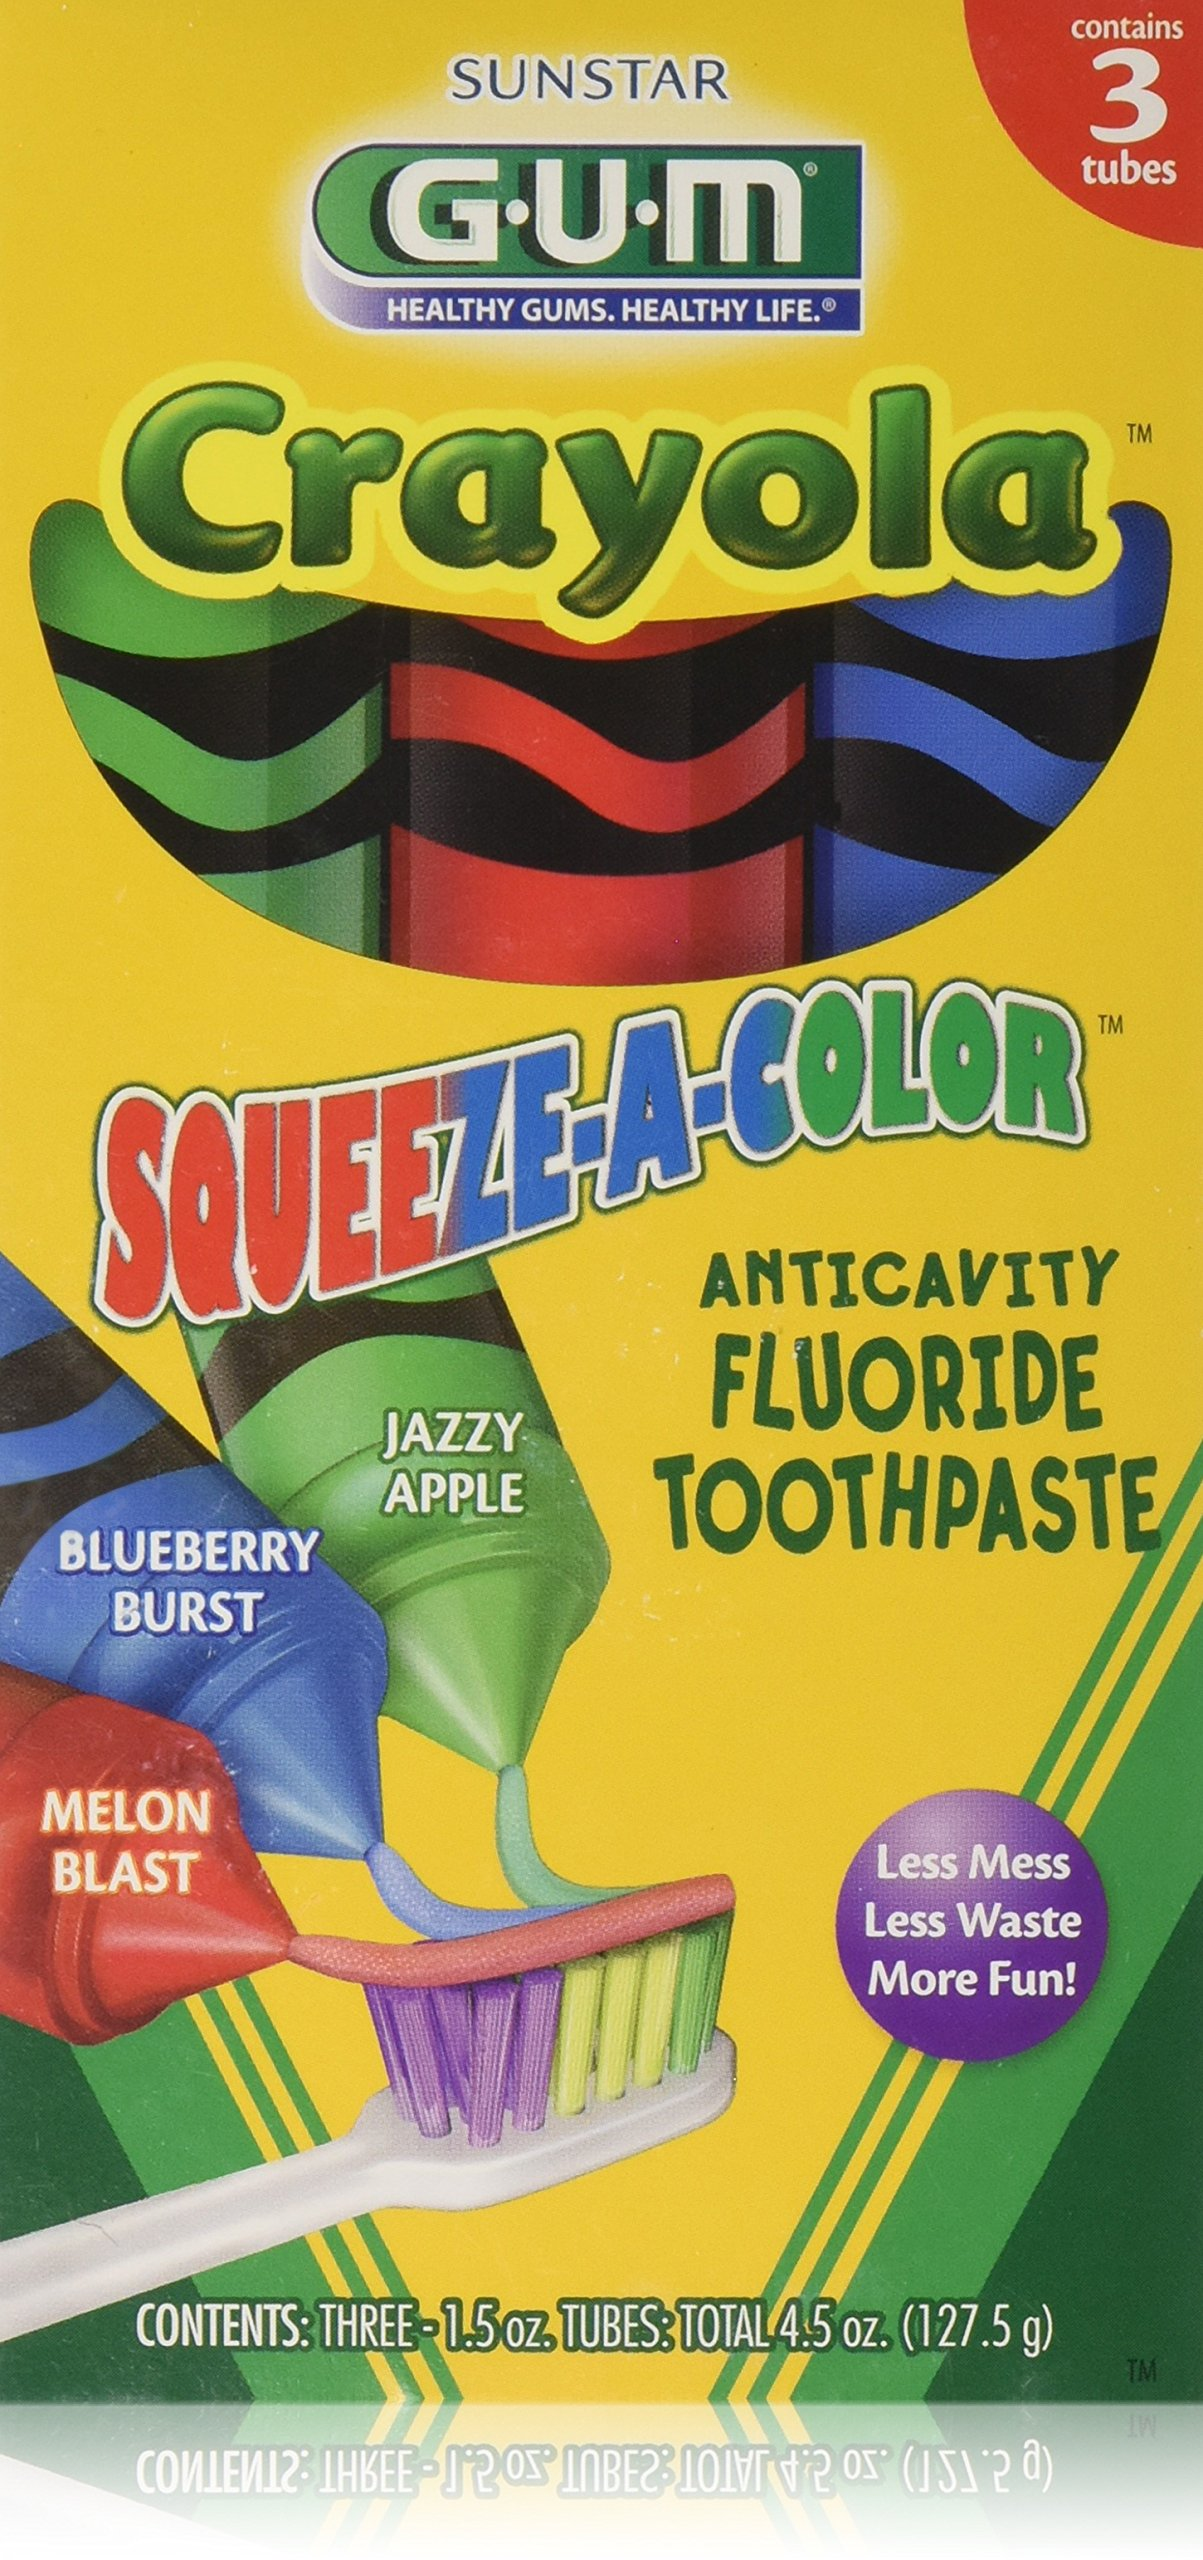 GUM Crayola Squeeze-A-Color Toothpaste, 3- 1.5oz Tubes